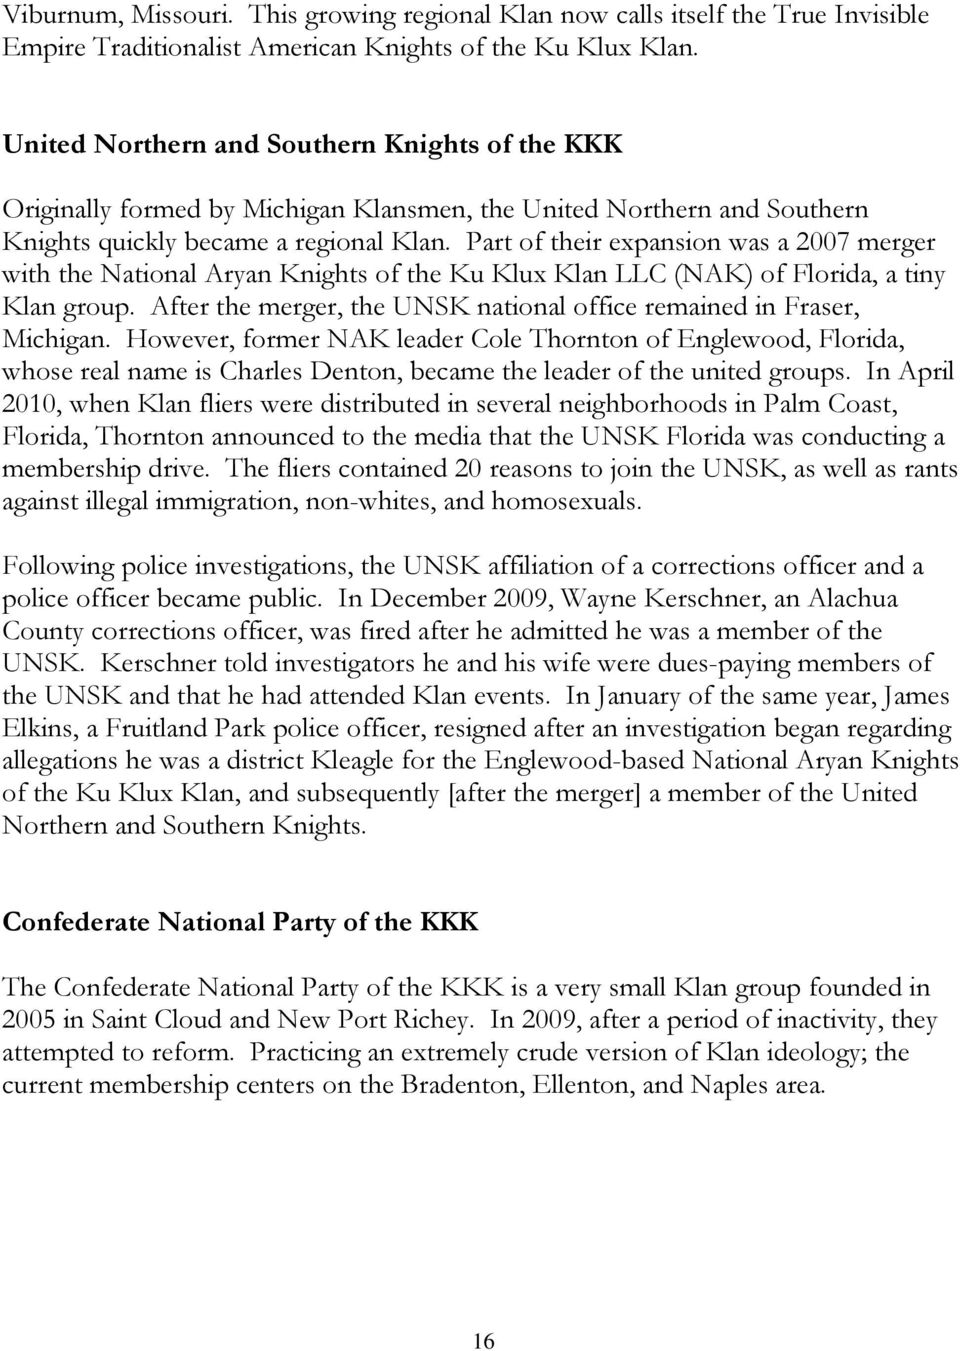 Part of their expansion was a 2007 merger with the National Aryan Knights of the Ku Klux Klan LLC (NAK) of Florida, a tiny Klan group.